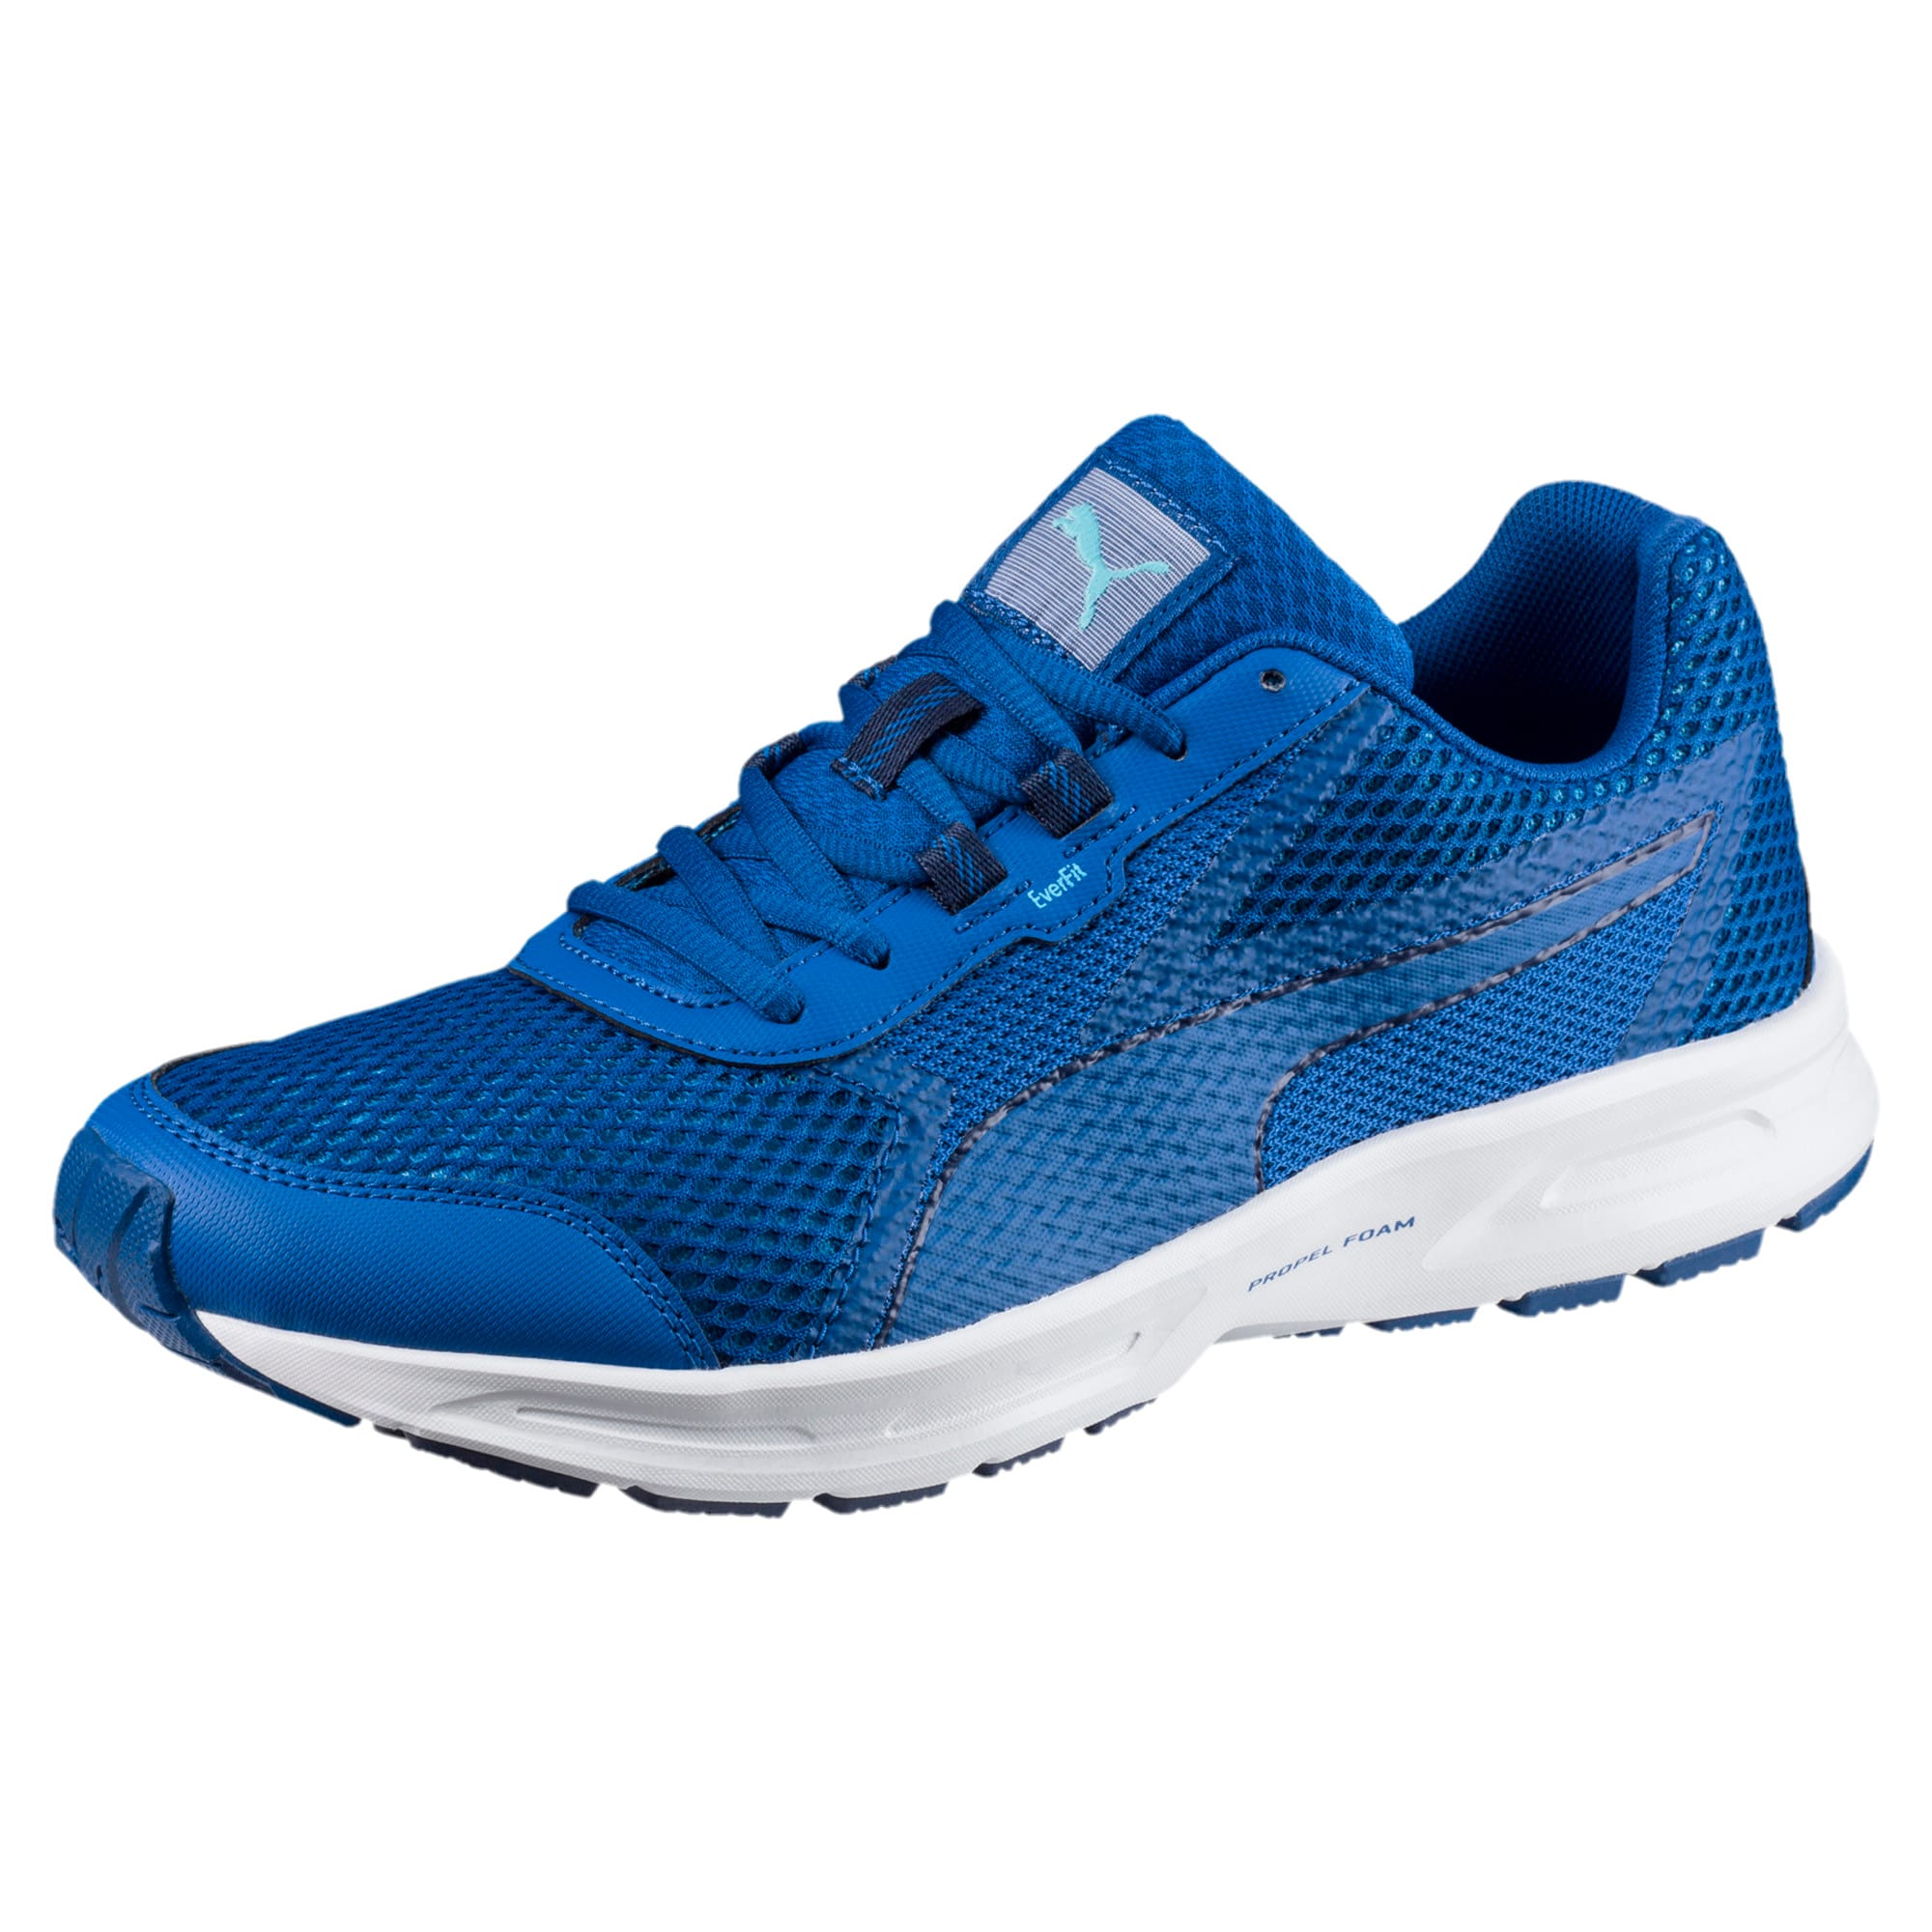 Thumbnail 1 of Essential Runner Men's Running Shoes, Lapis Blue-Blue Depths-Turq, medium-IND